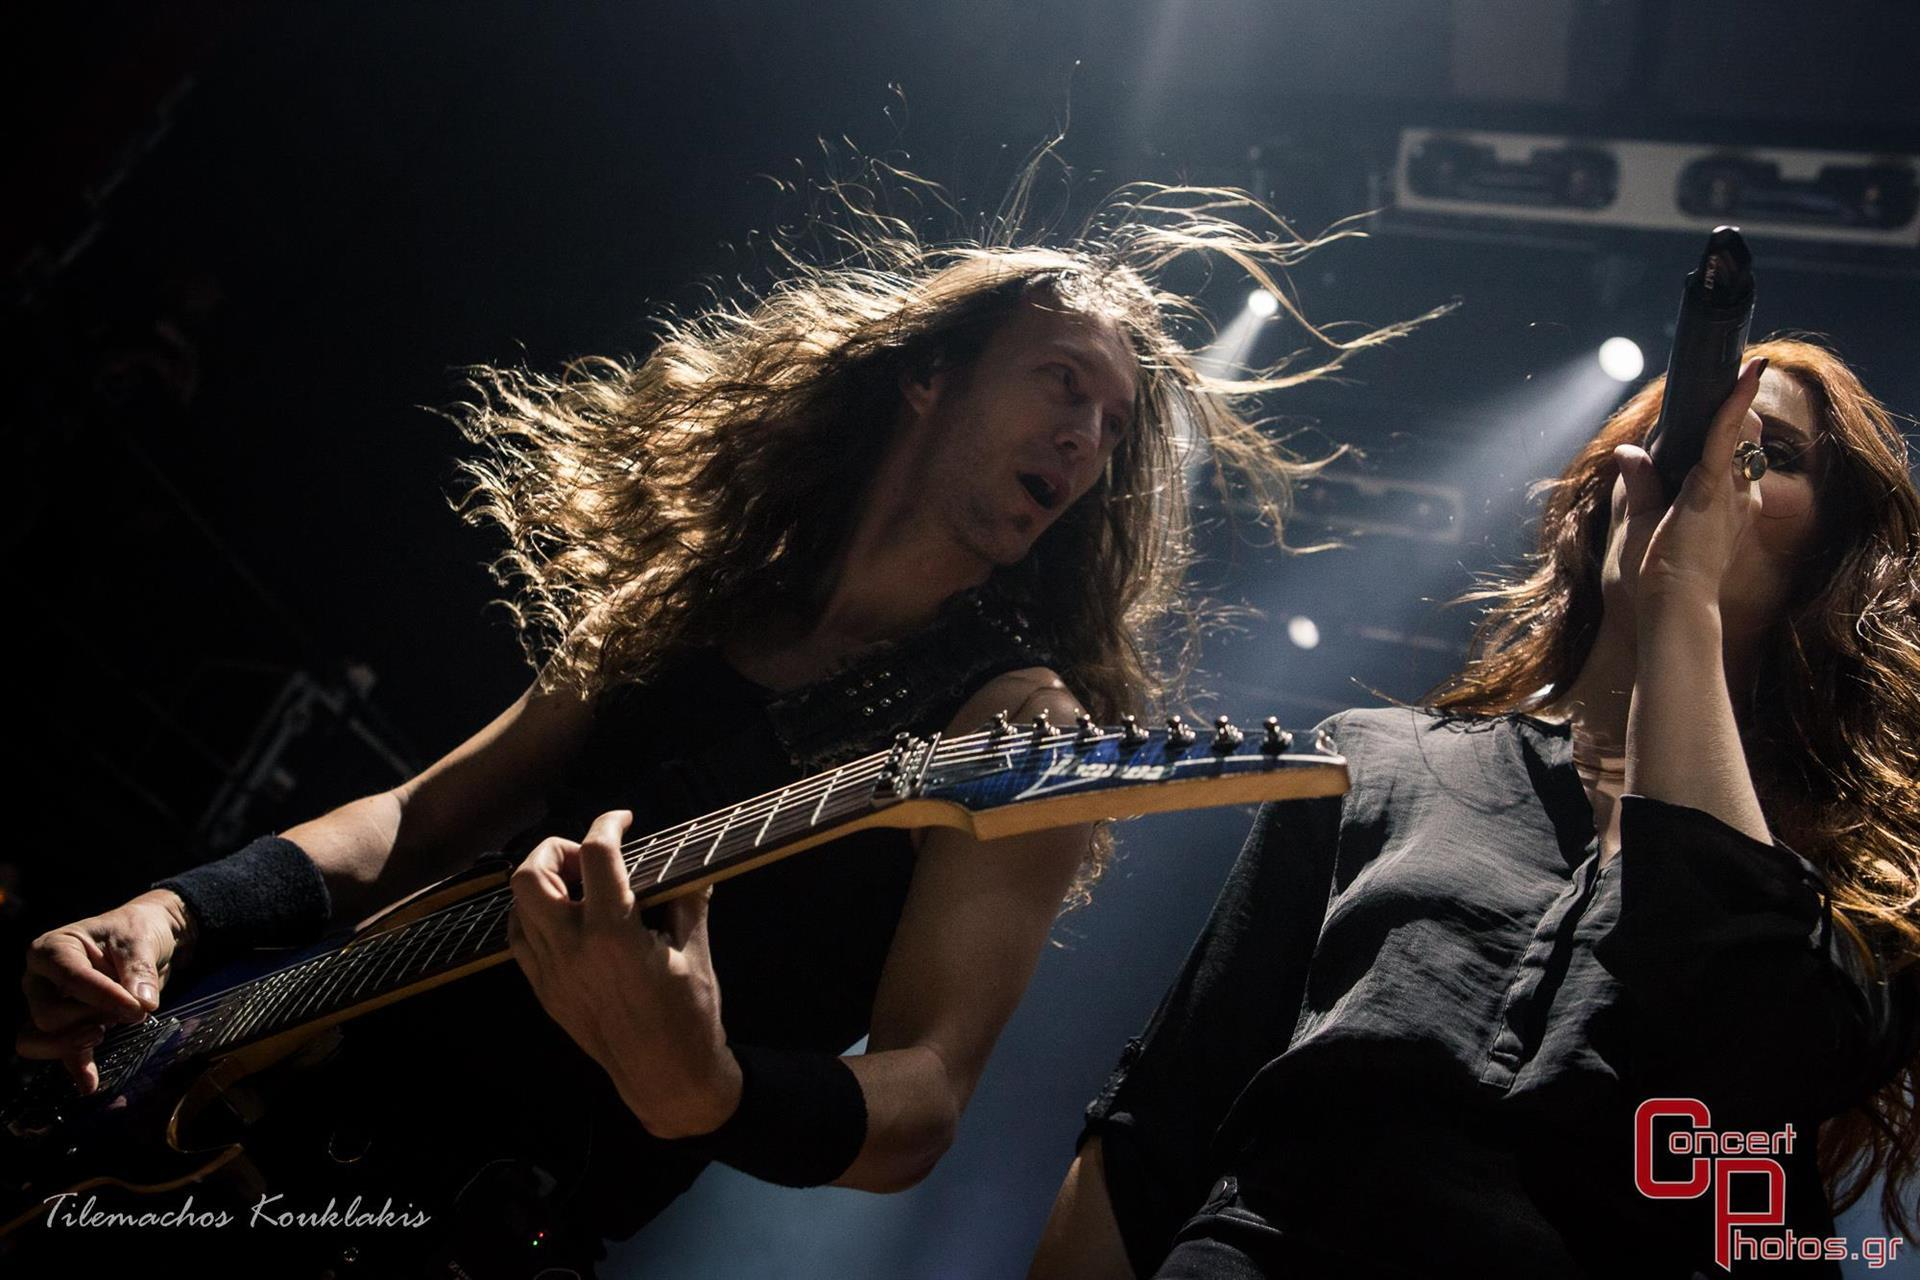 EPICA Jaded Star Fuzz Club-EPICA Jaded Star Fuzz Club photographer:  - Epica_07